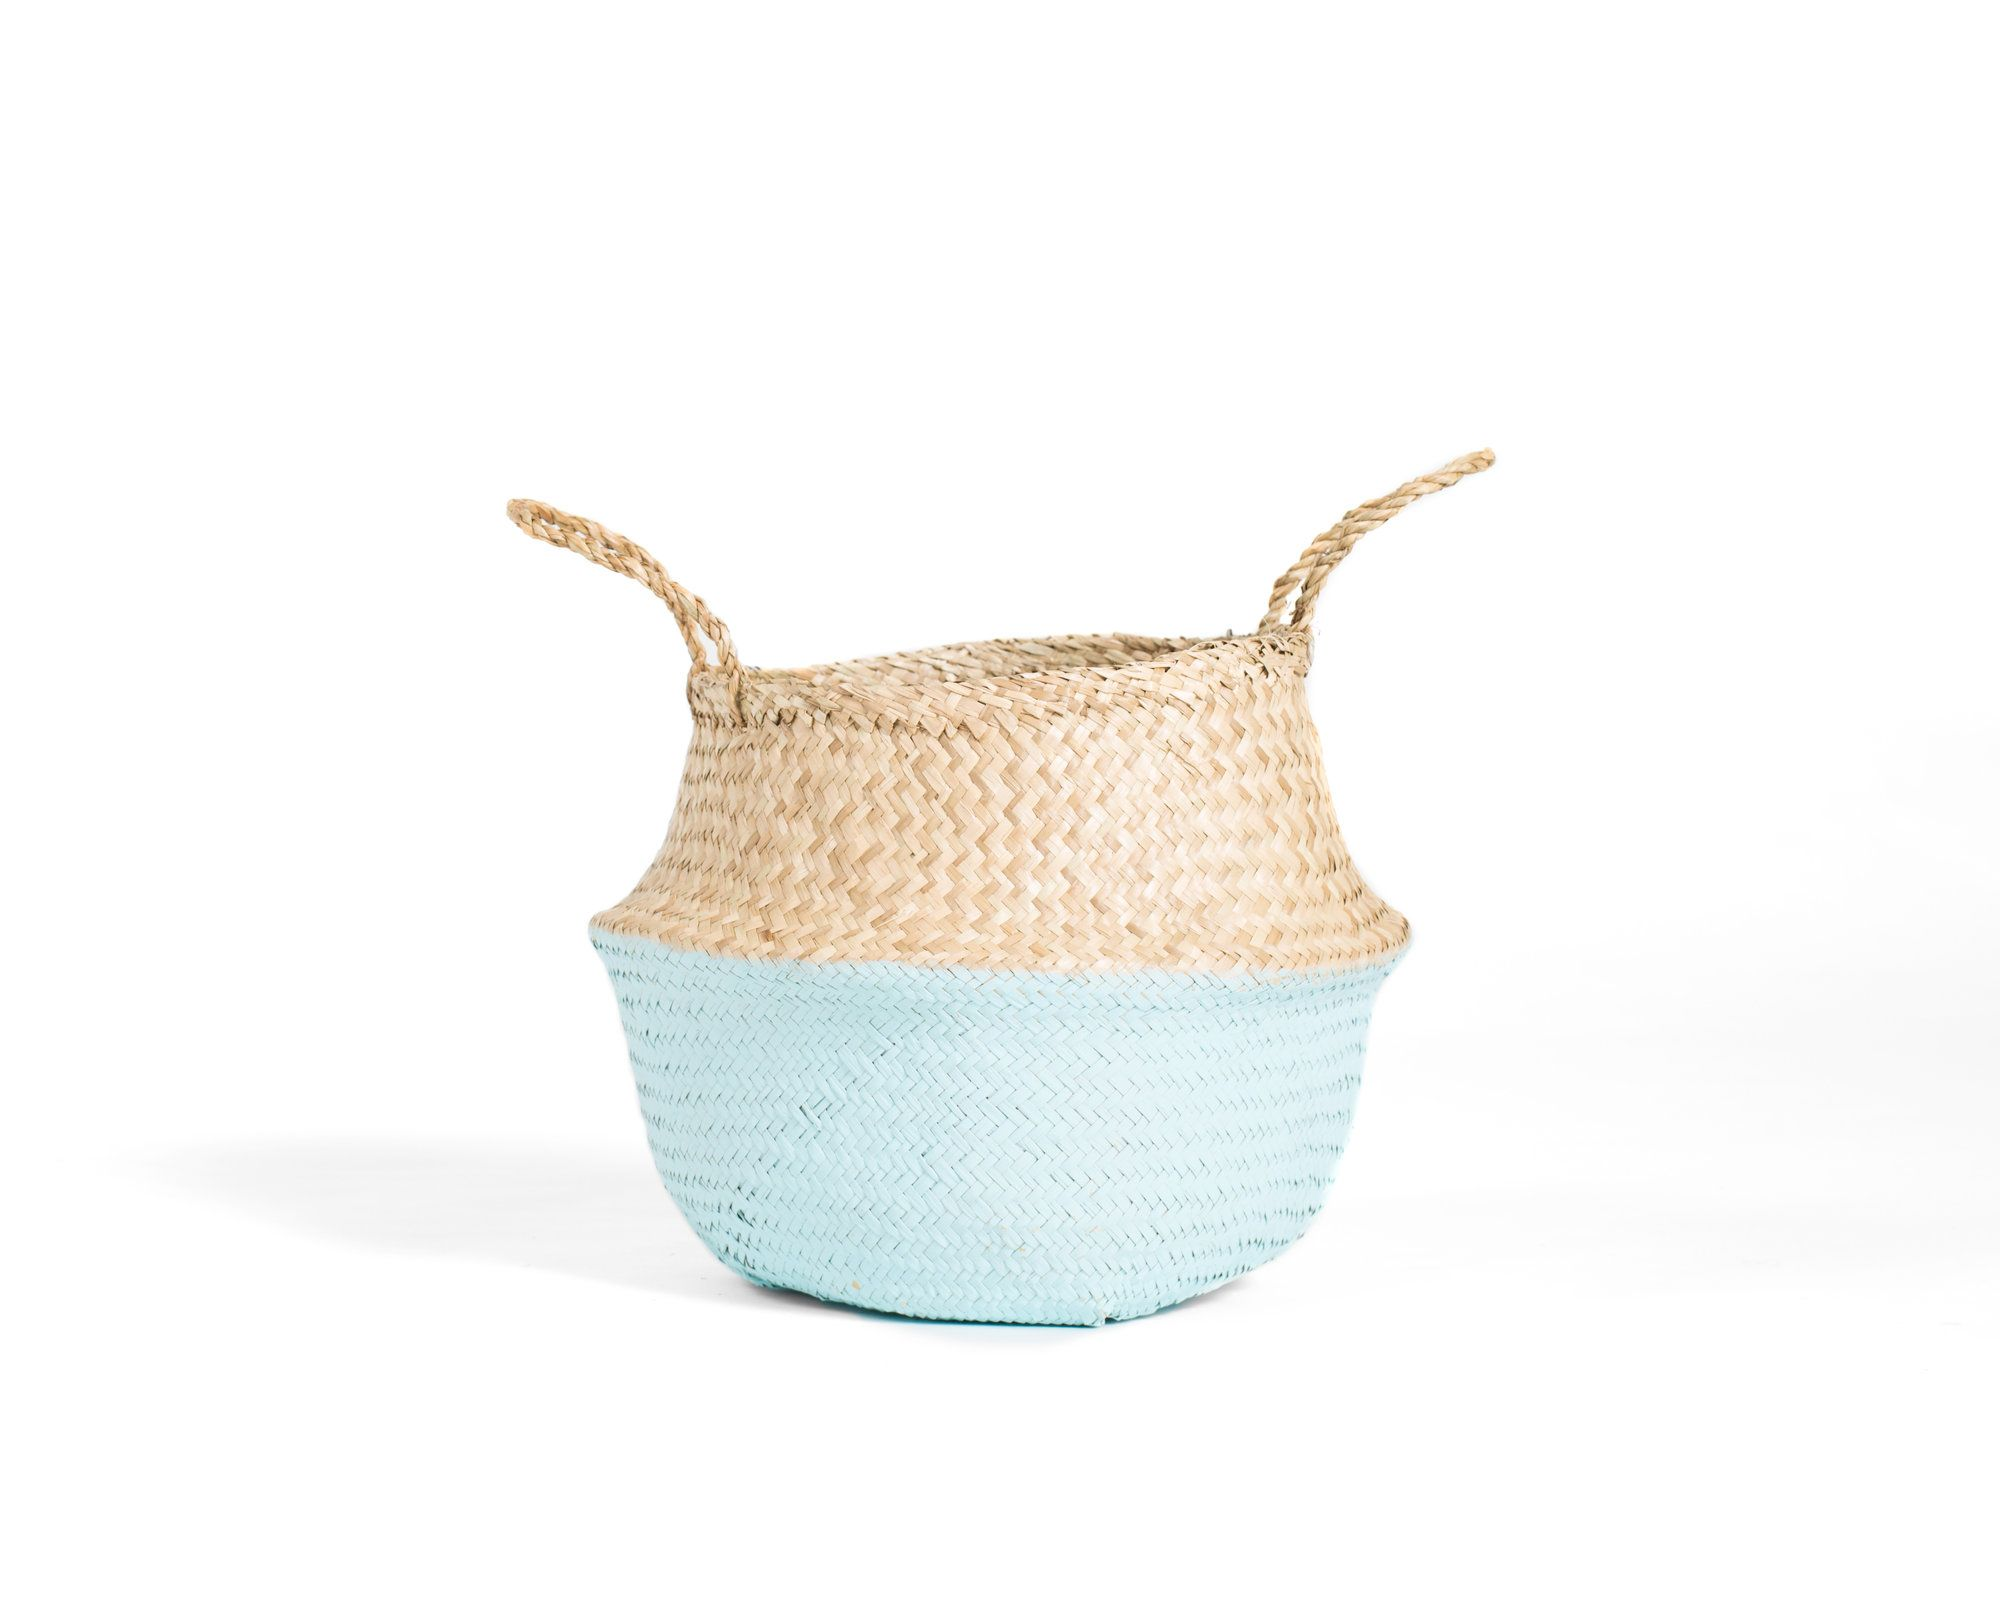 Handmade And Carefully Woven From Natural Material, These Eco Friendly  Baskets Look Playfully Cute And Lend Bountiful Storage Space Around The  Home.